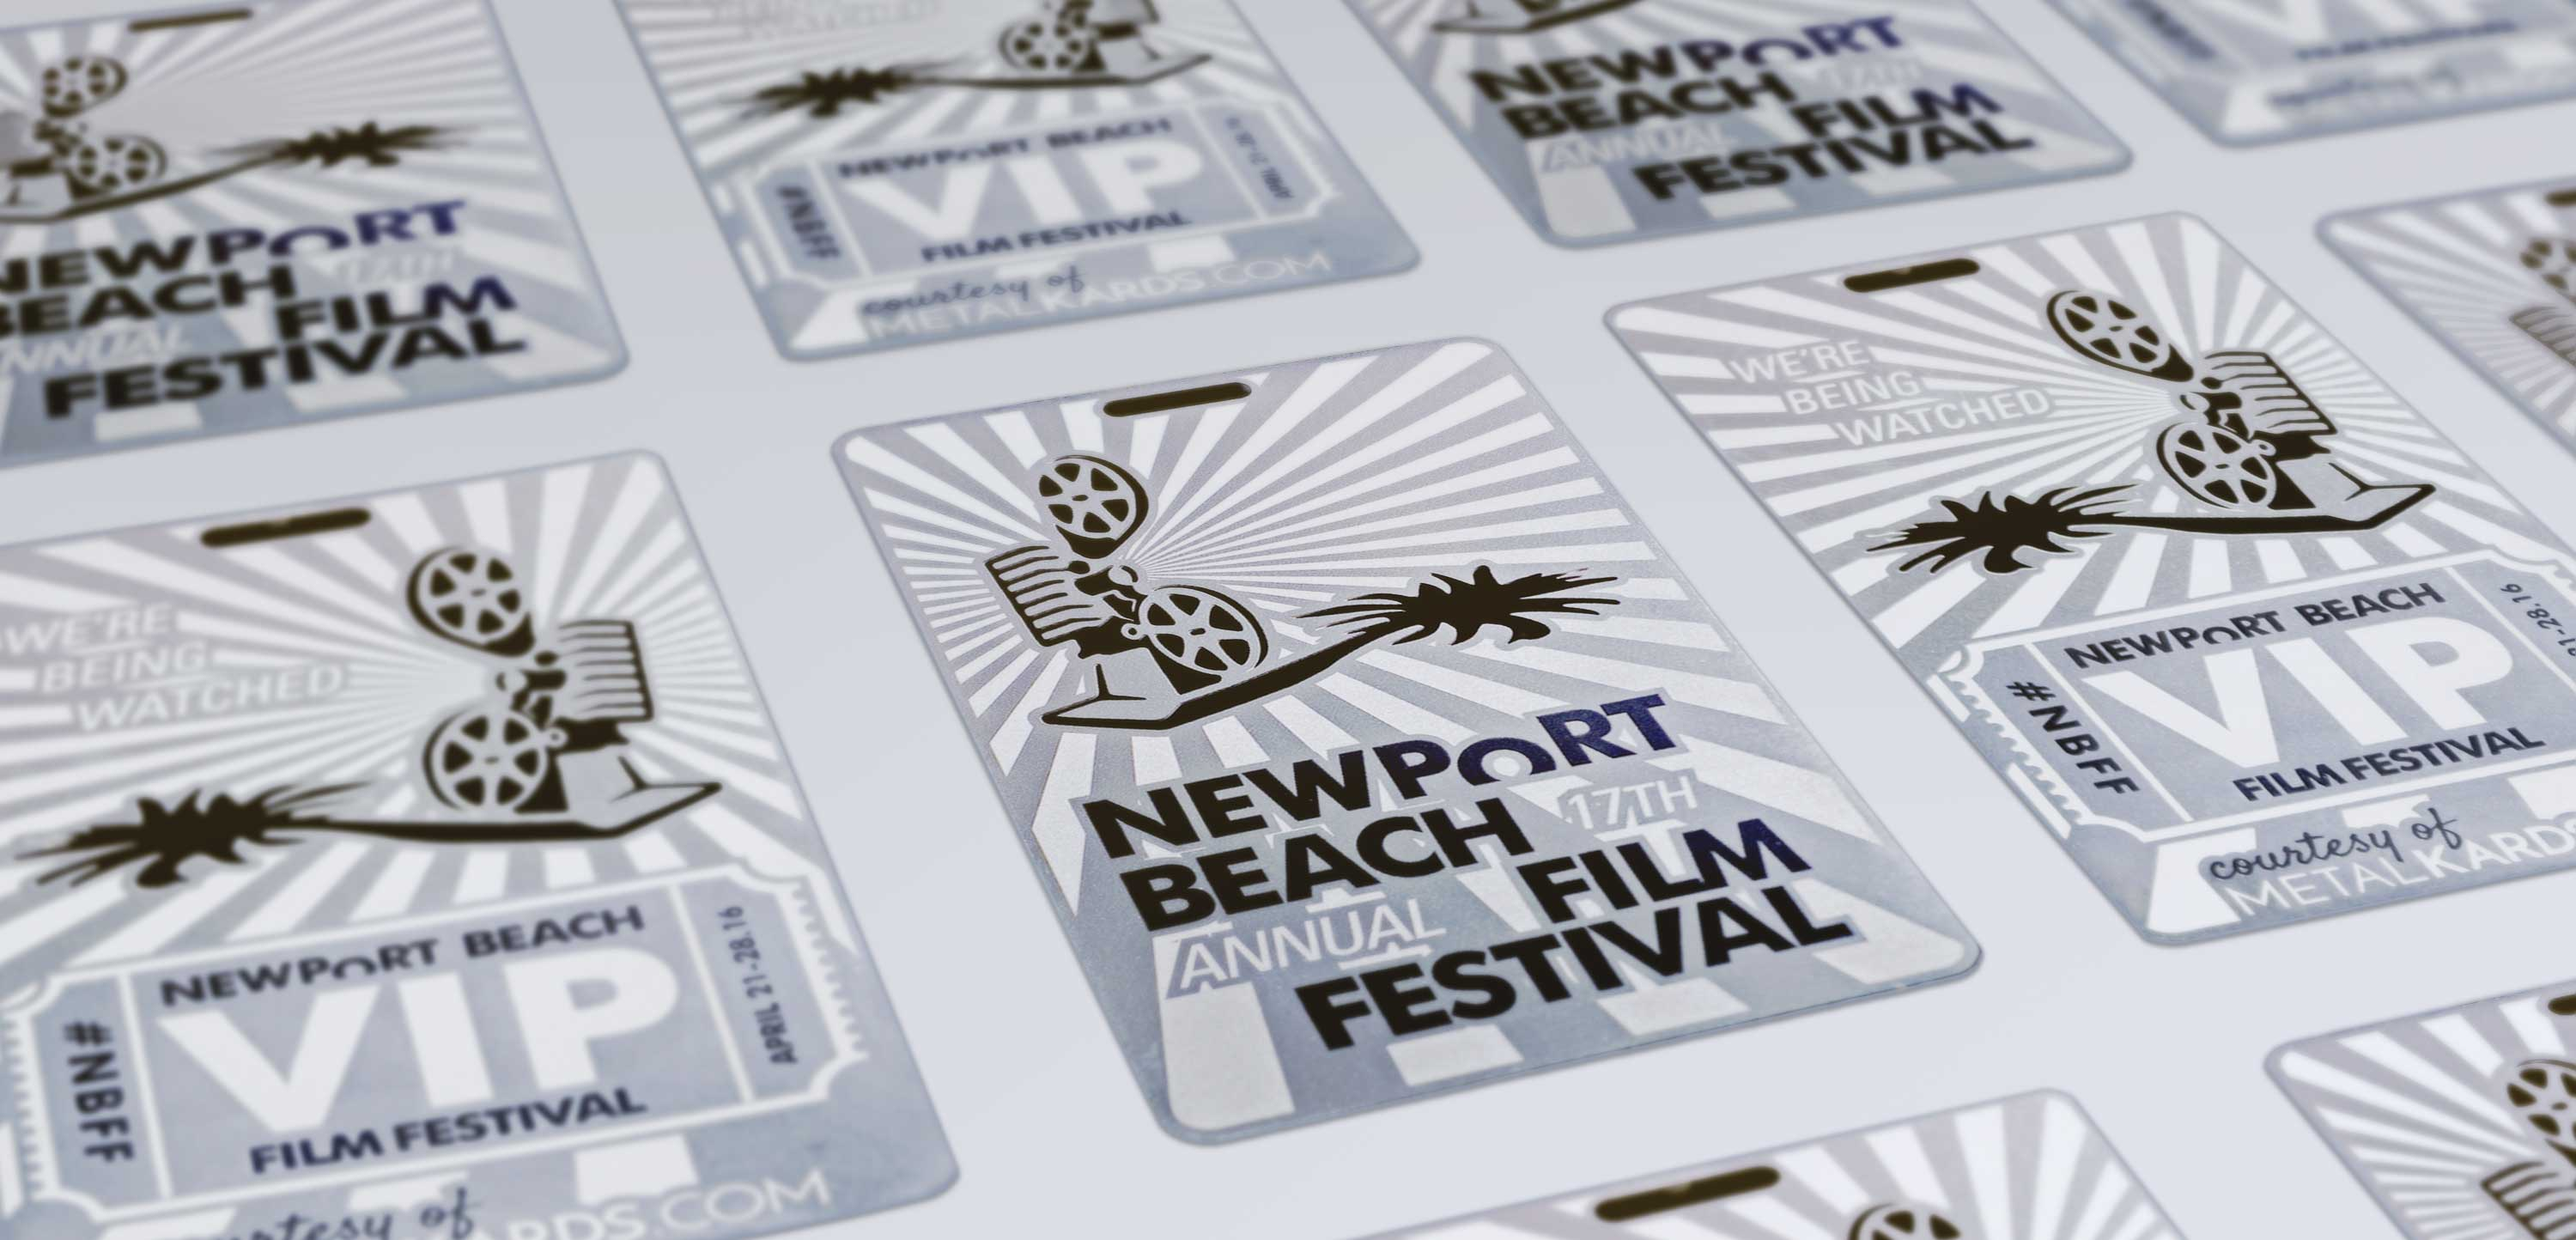 Metal VIP Cards for Newport Beach Film Festival